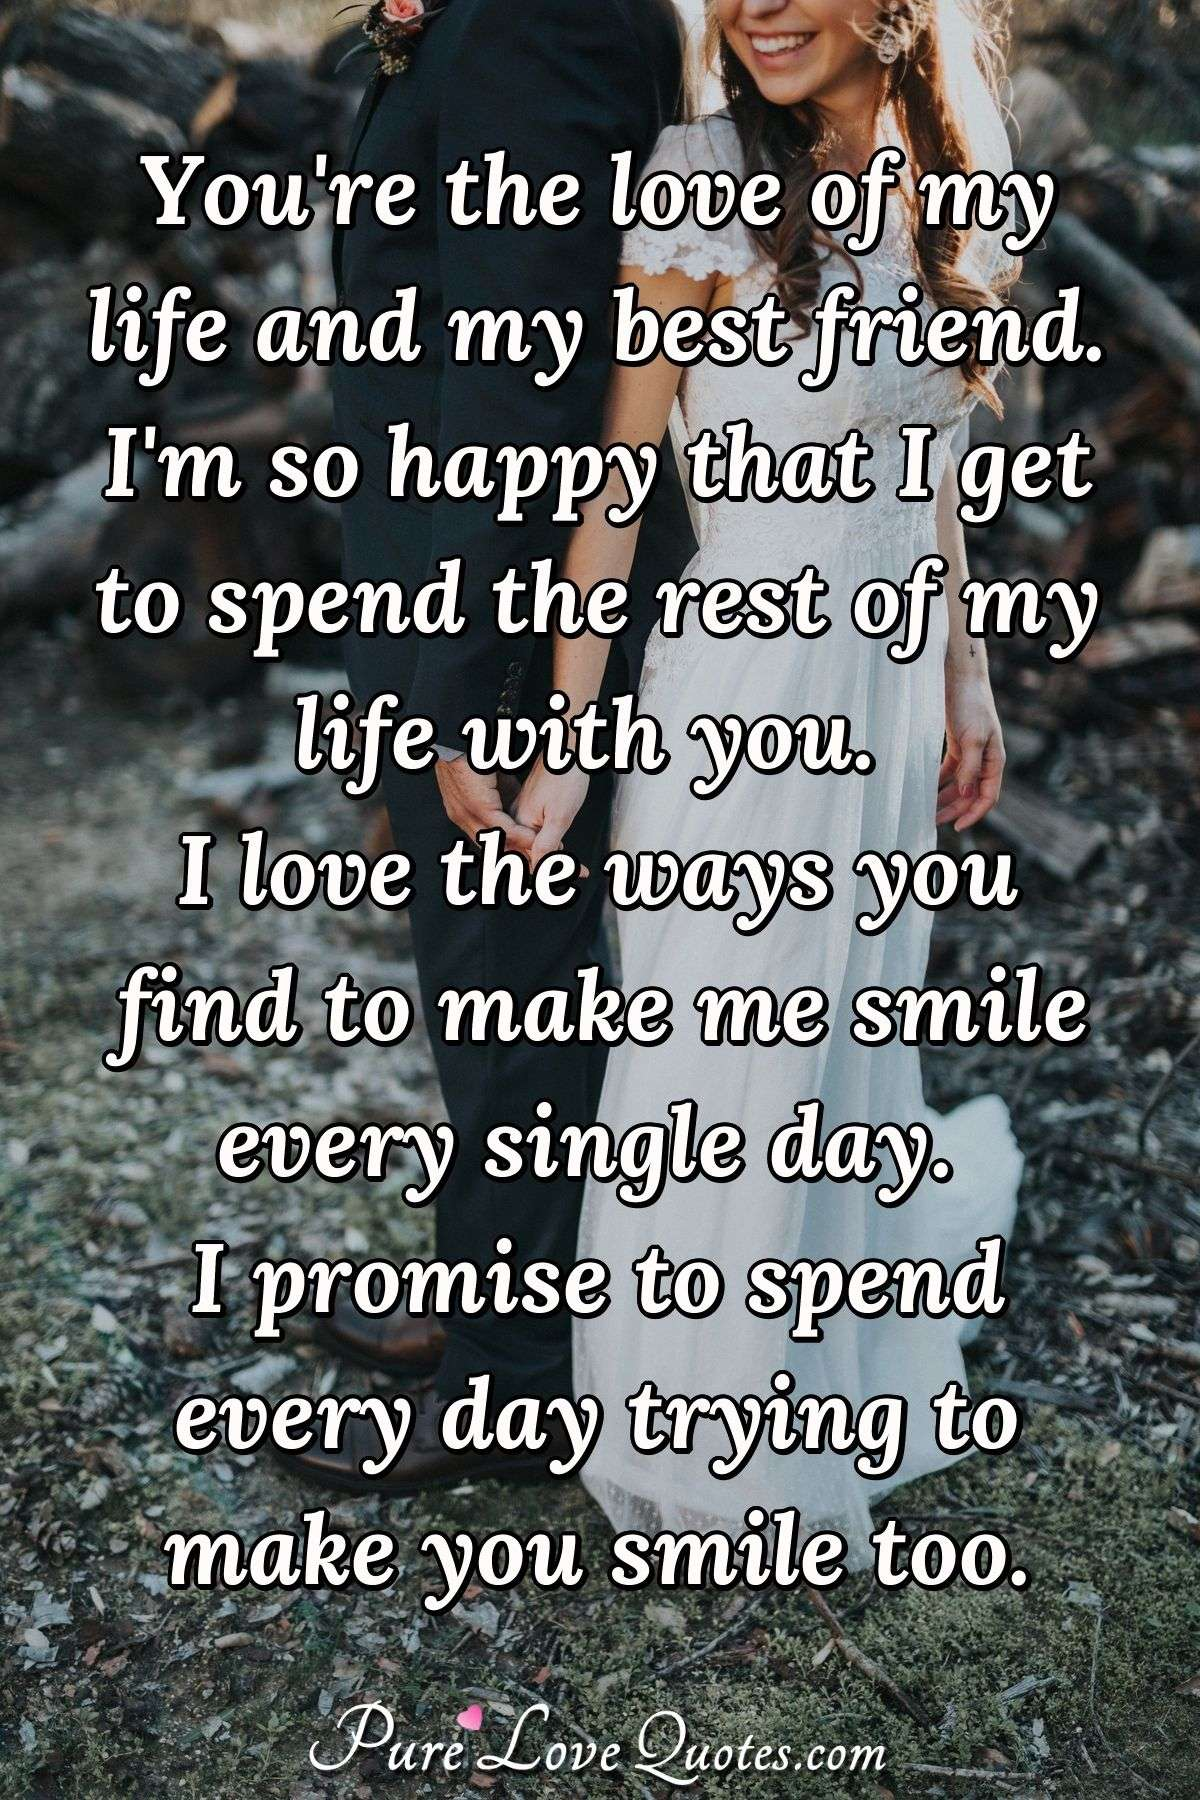 You Re The Love Of My Life And My Best Friend I M So Happy That I Get To Spend Purelovequotes